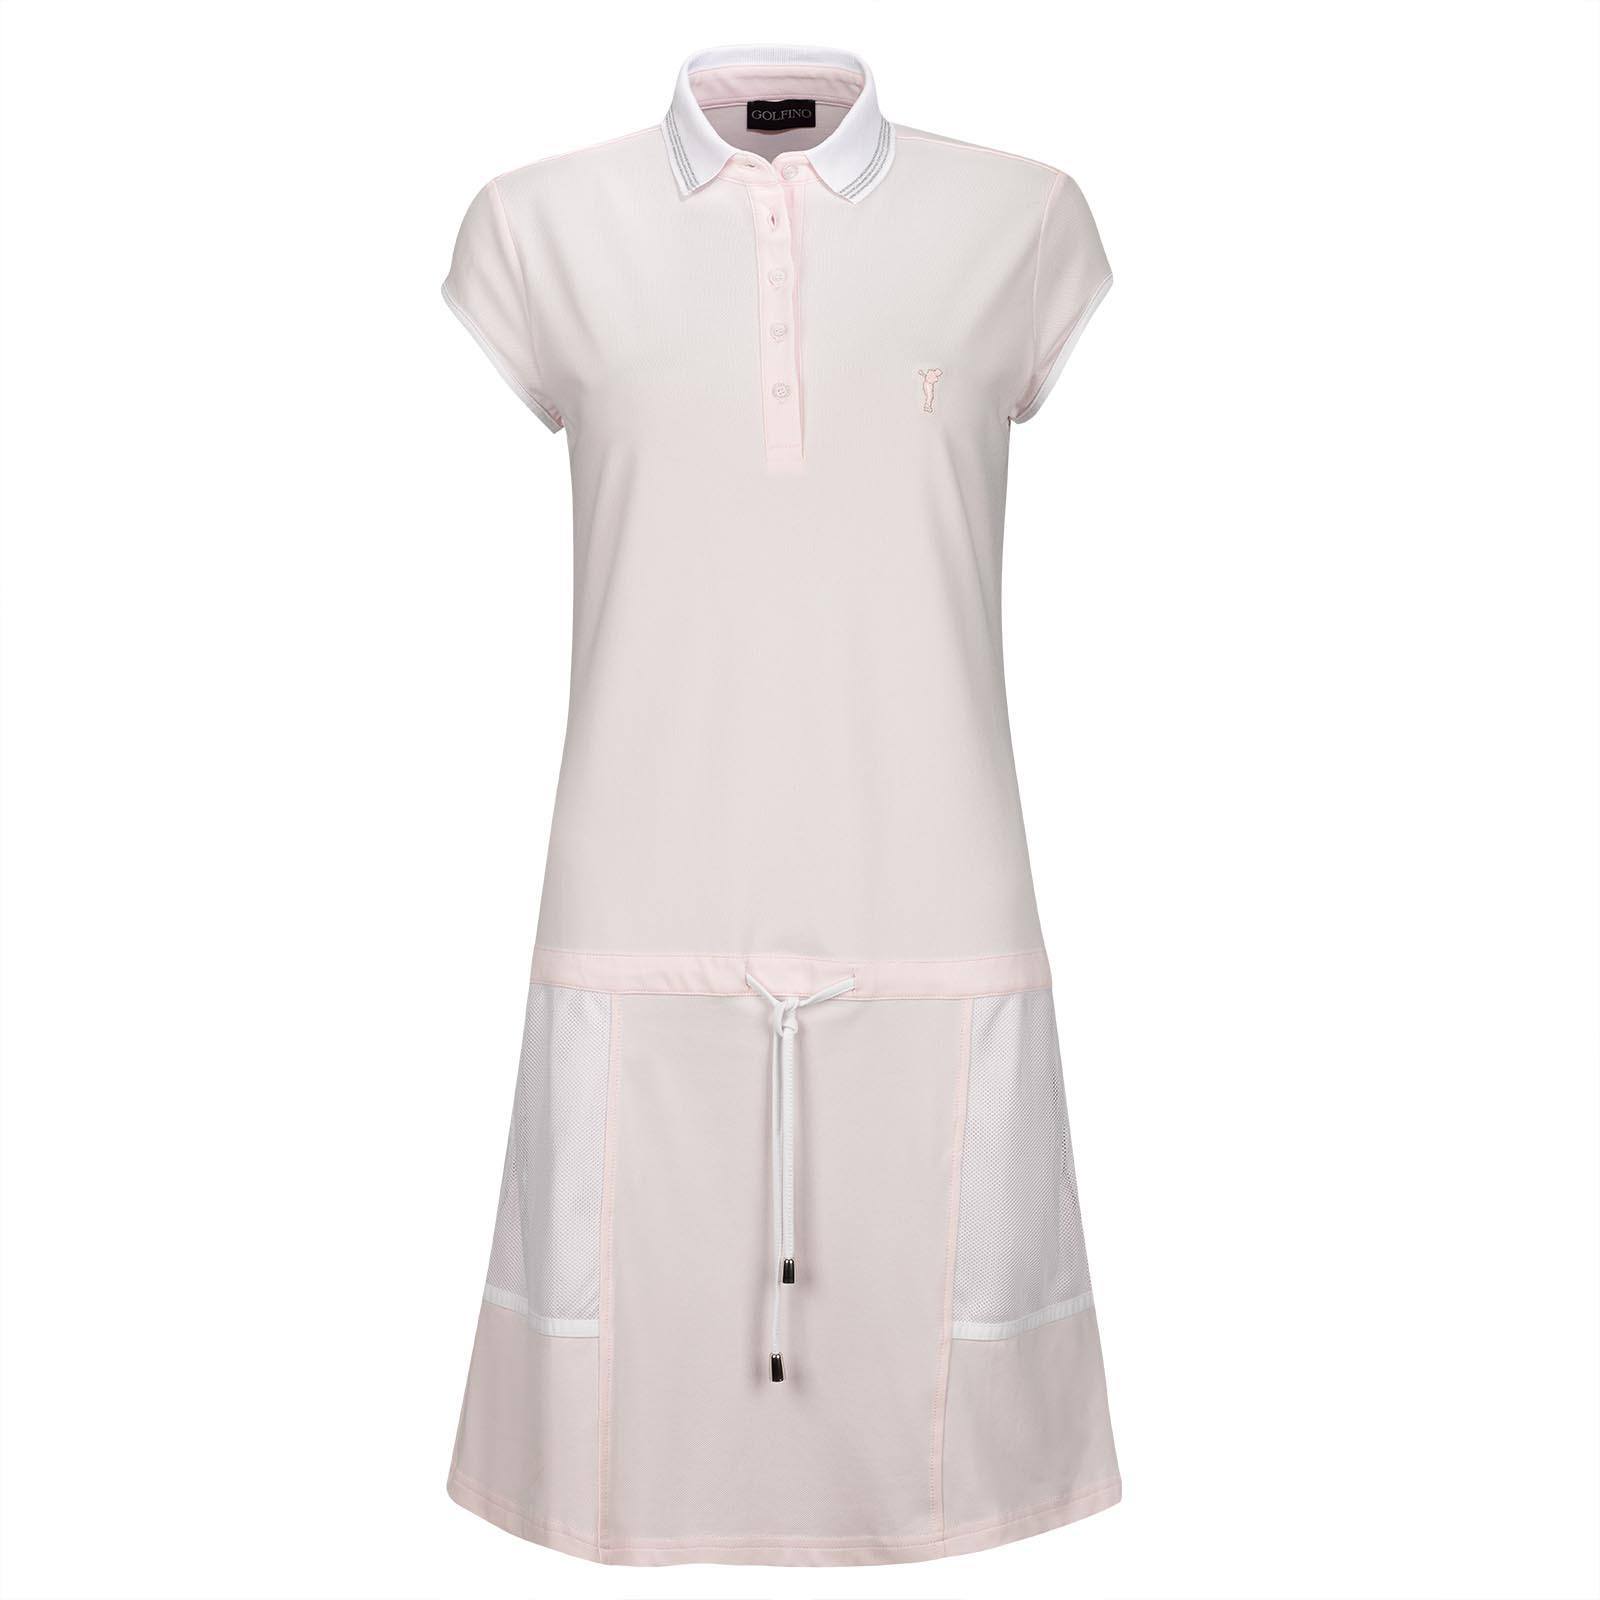 Ladies' Golf pique dress with Sun Protection